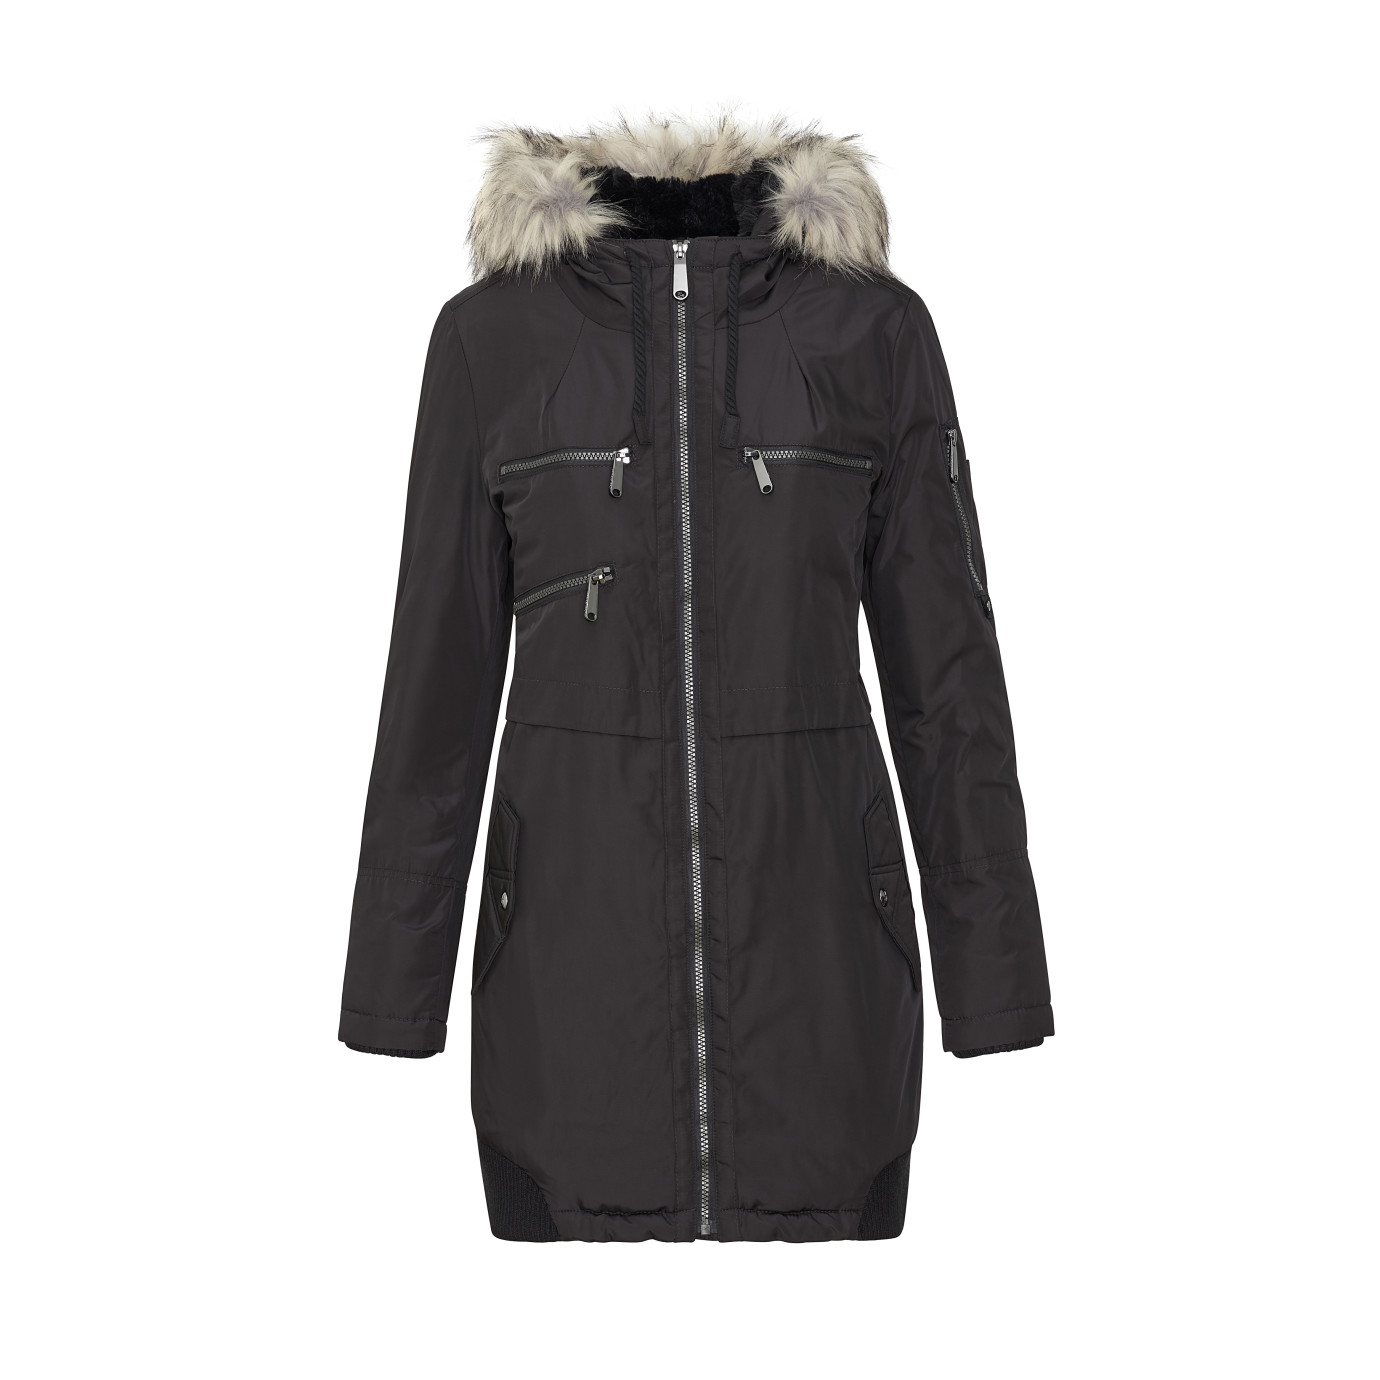 Parka Jacket with Faux Fur Hood - Outerwear | SamEdelman.com